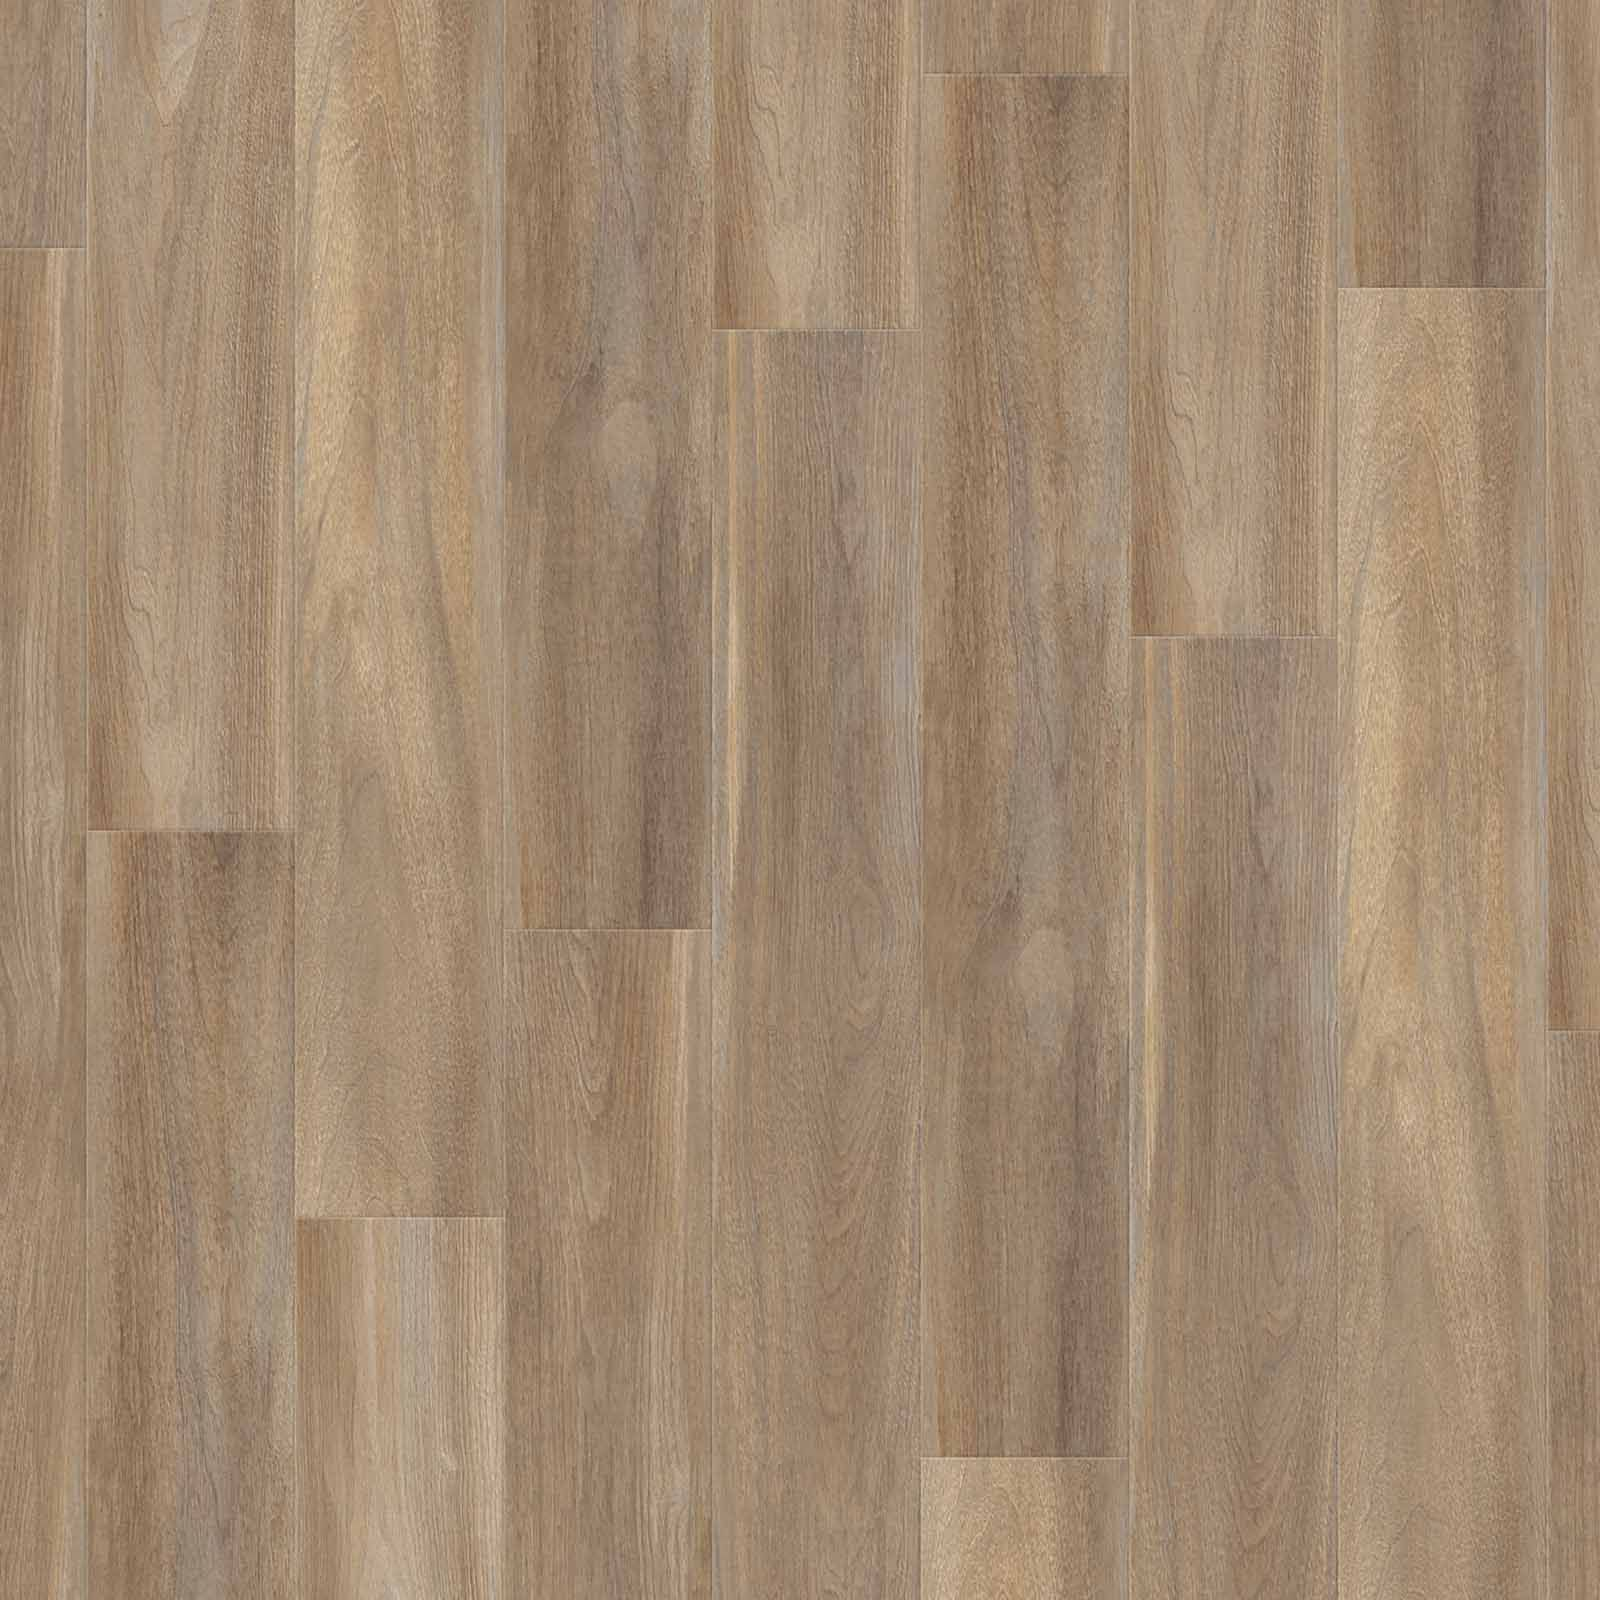 Pavimenti In Pvc Ad Incastro 0003 viajo - gerflor rigid 55 lock acoustic | pavimento in pvc